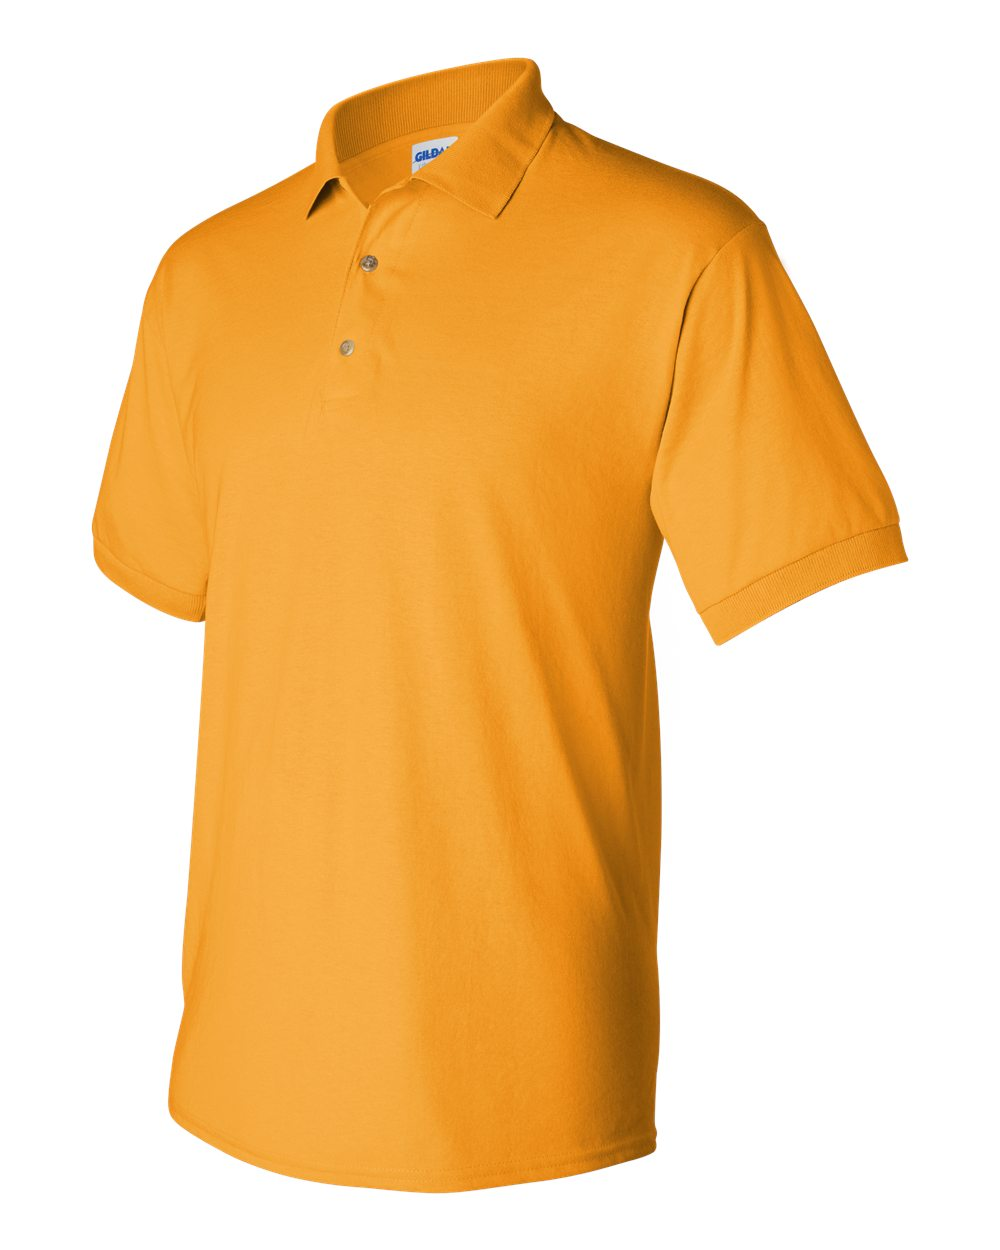 Southeast Gold Polo